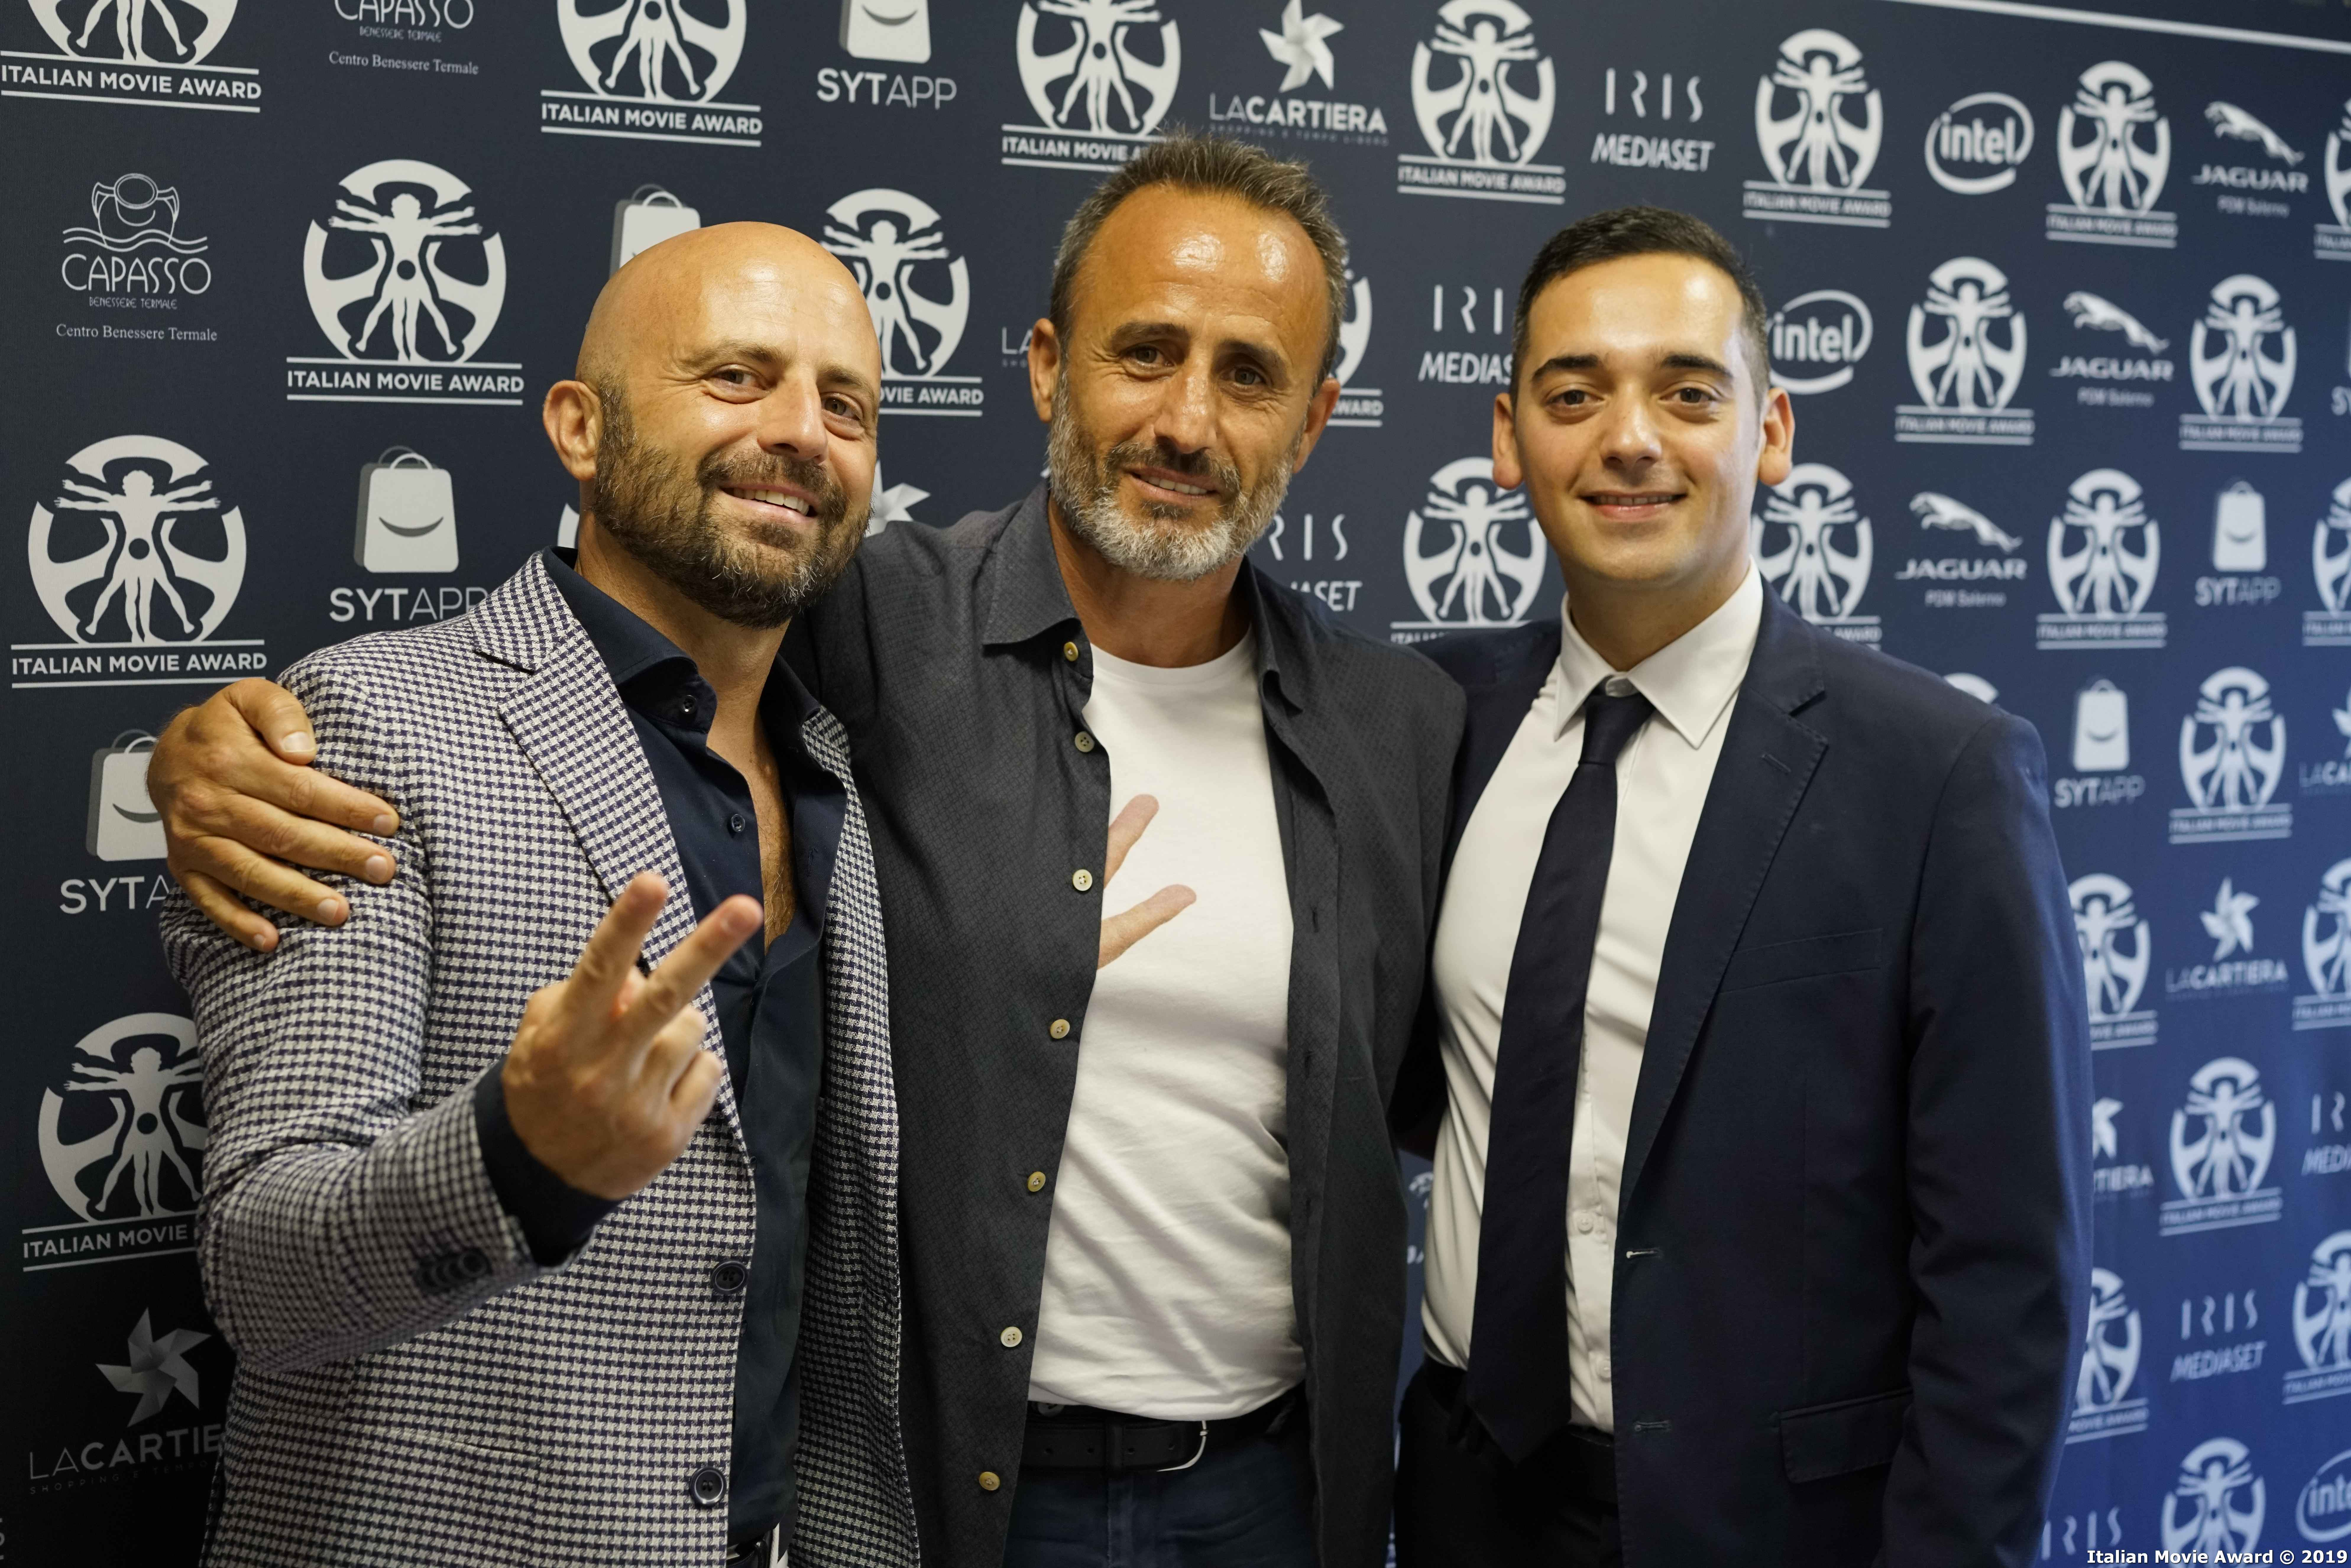 italian_movie_award_2019_conferenza_1_42